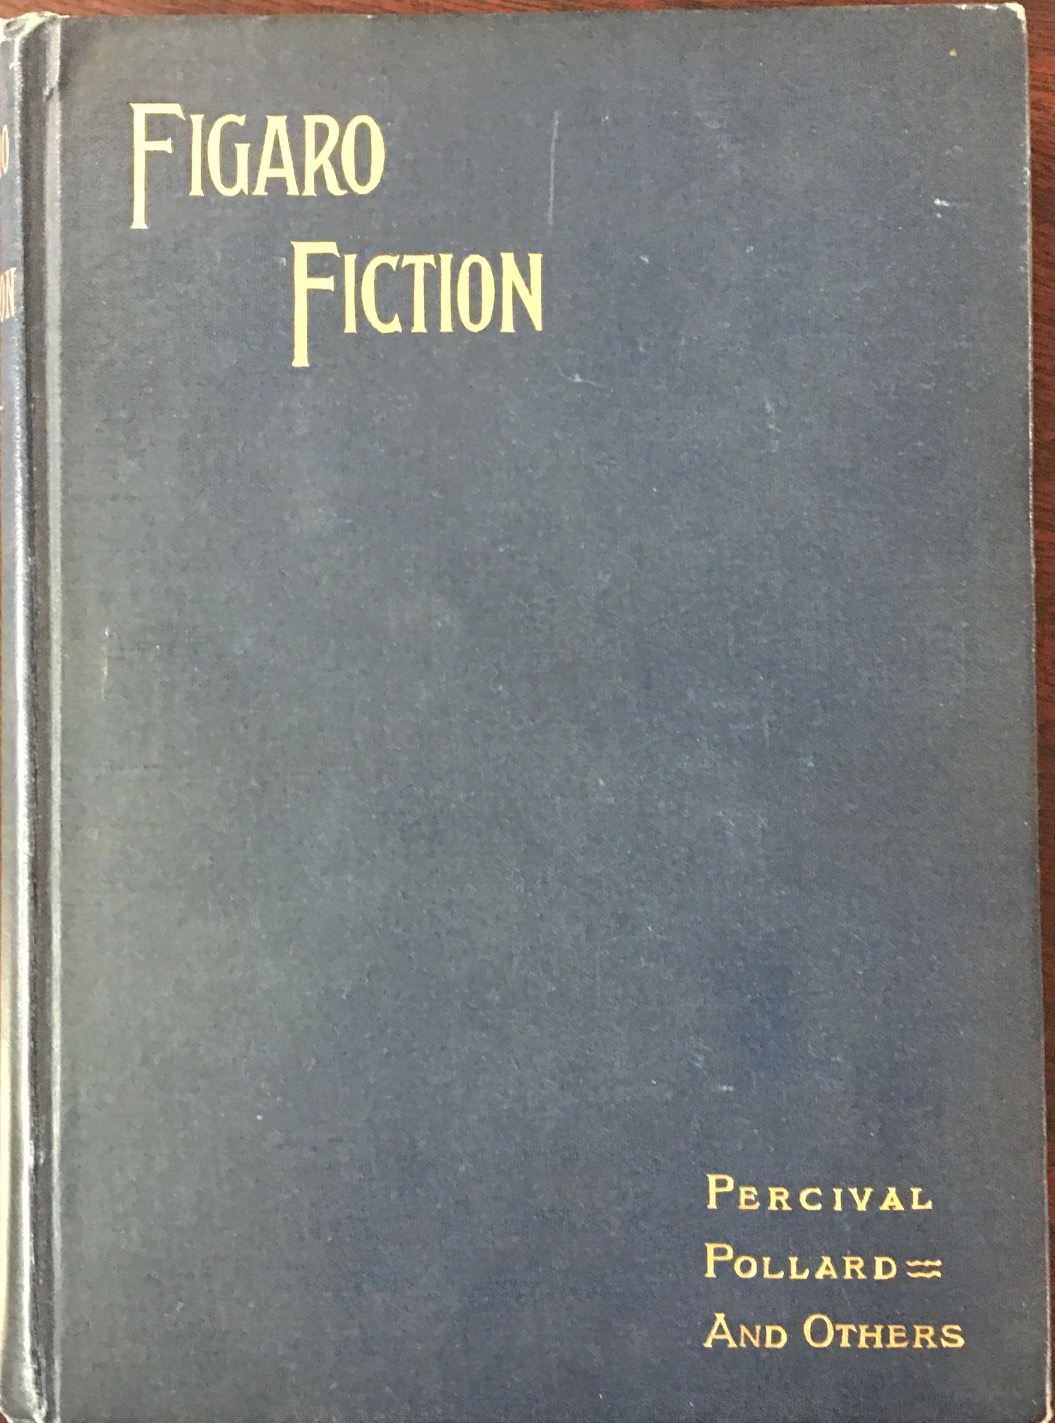 Image for Figaro Fiction: A Collection of Short Stories by J. Percival Pollard, Harold R. Vynne, Fanny Locke MacKenzie, Eugenie Long, Clifton S. Sultzer, Tom Hall, Robert Yulee Toombs, Andrew Romaine, Frederic Mayer and Austyn Granville. Decorations by Frank Holme and Curtis Gandy.